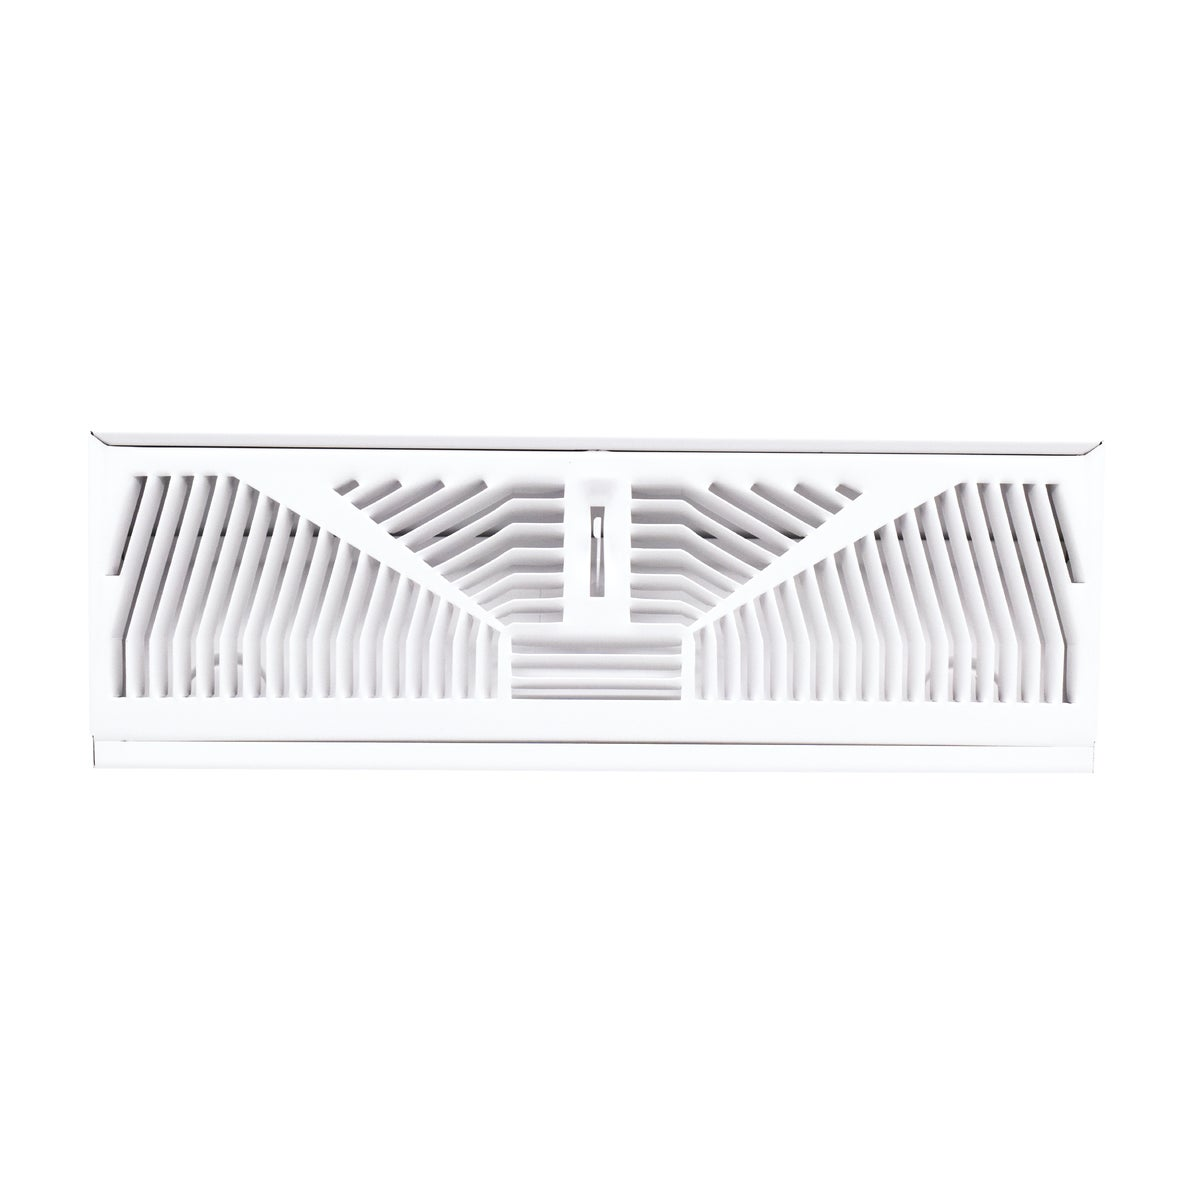 "15""WH BASEBOARD DIFFUSER - ABBBWH15 by Greystone Home Prod"